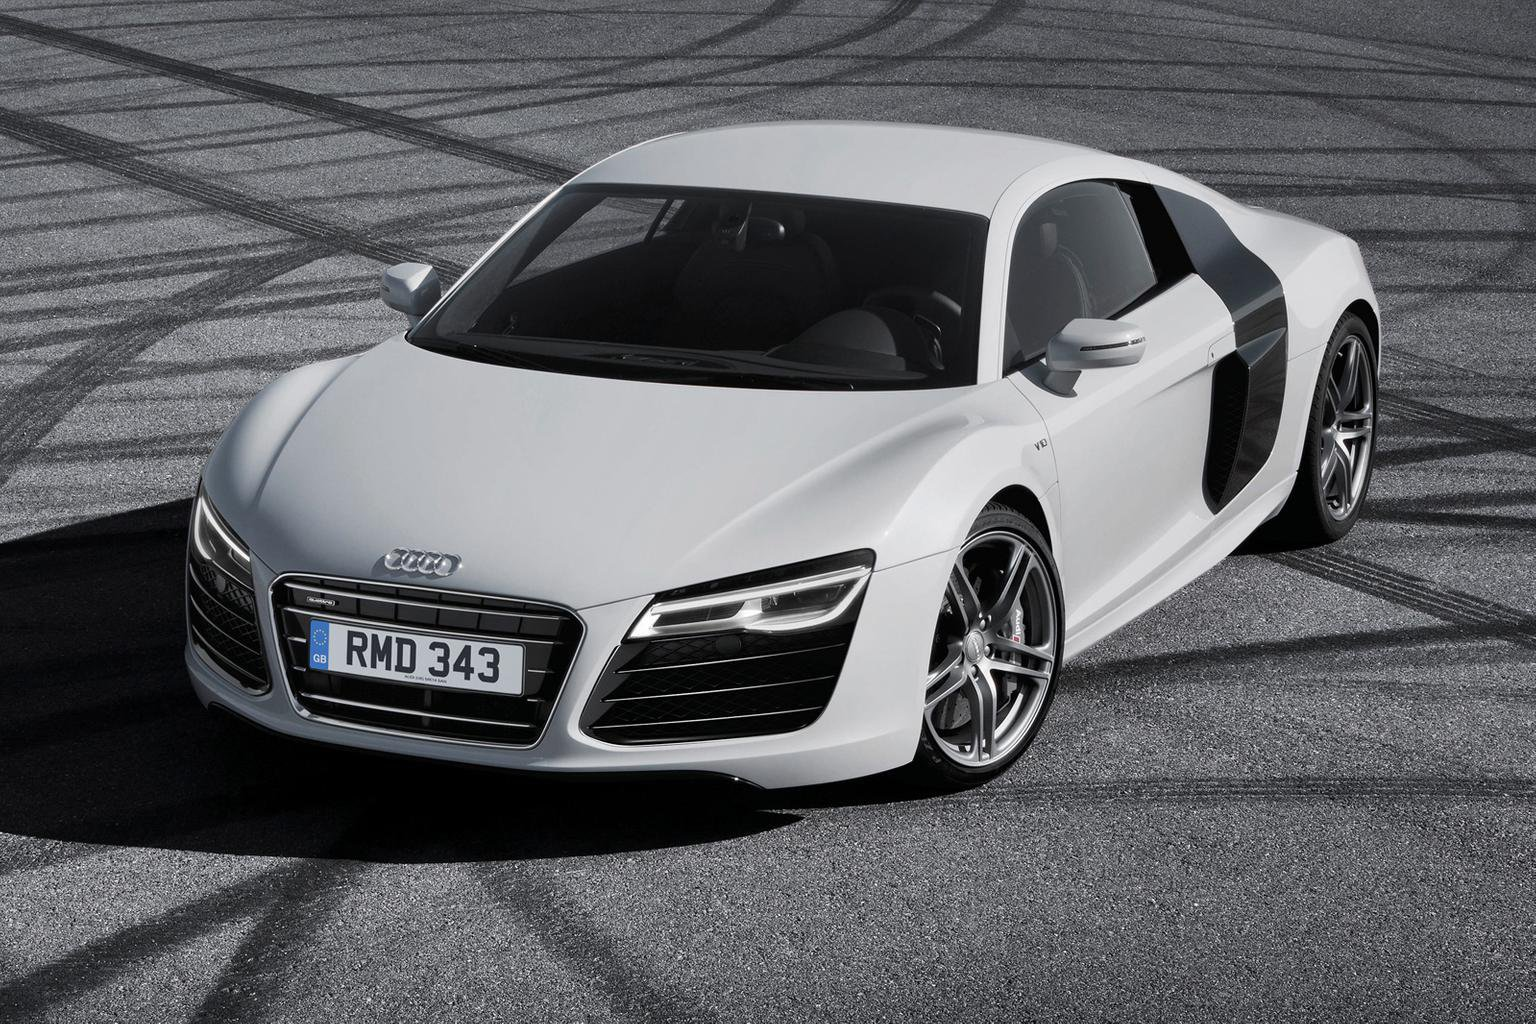 Deal of the day: Audi R8